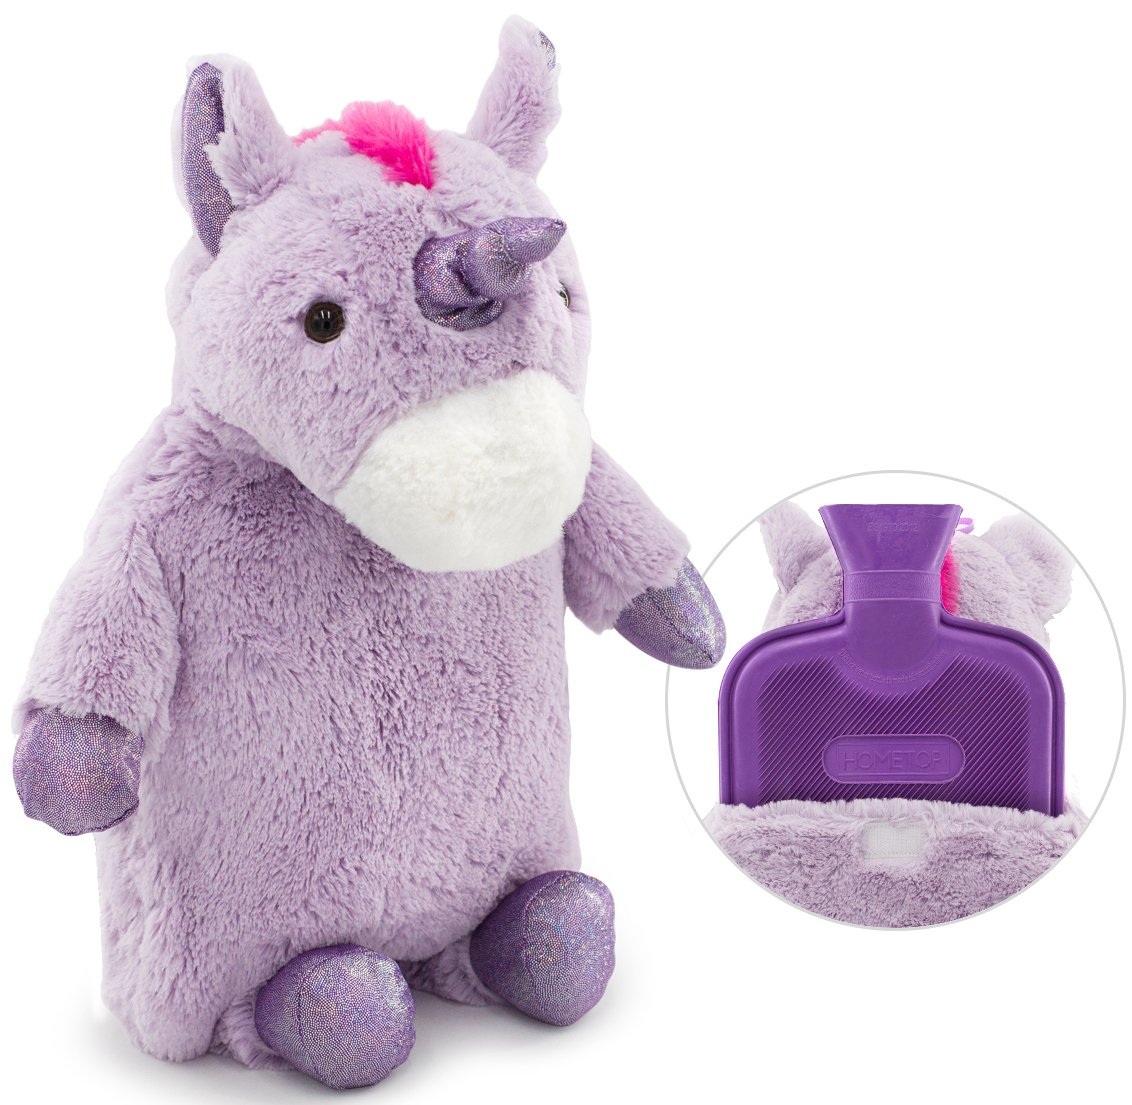 HomeTop Premium Classic Rubber Hot Water Bottle with Cute Unicorn Cover (2L, Purple)